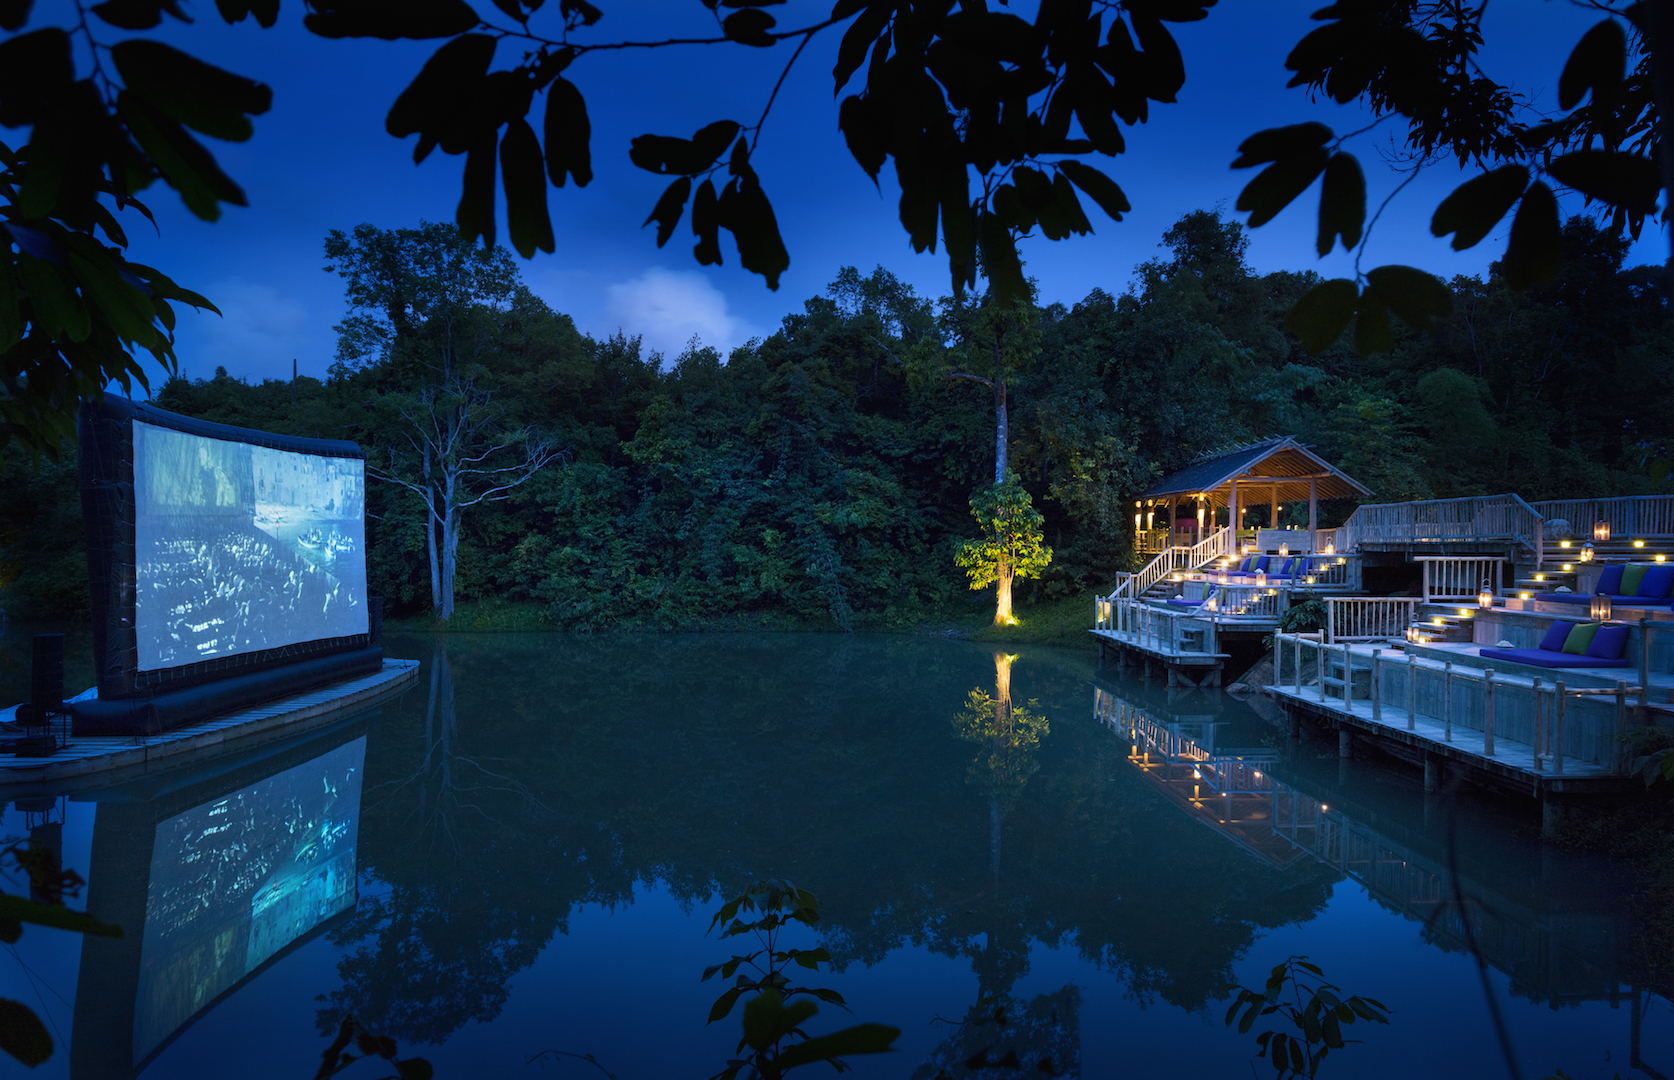 Soneva Kiri Koh Kood cinema paradiso, soneva kiri - Movie under stars